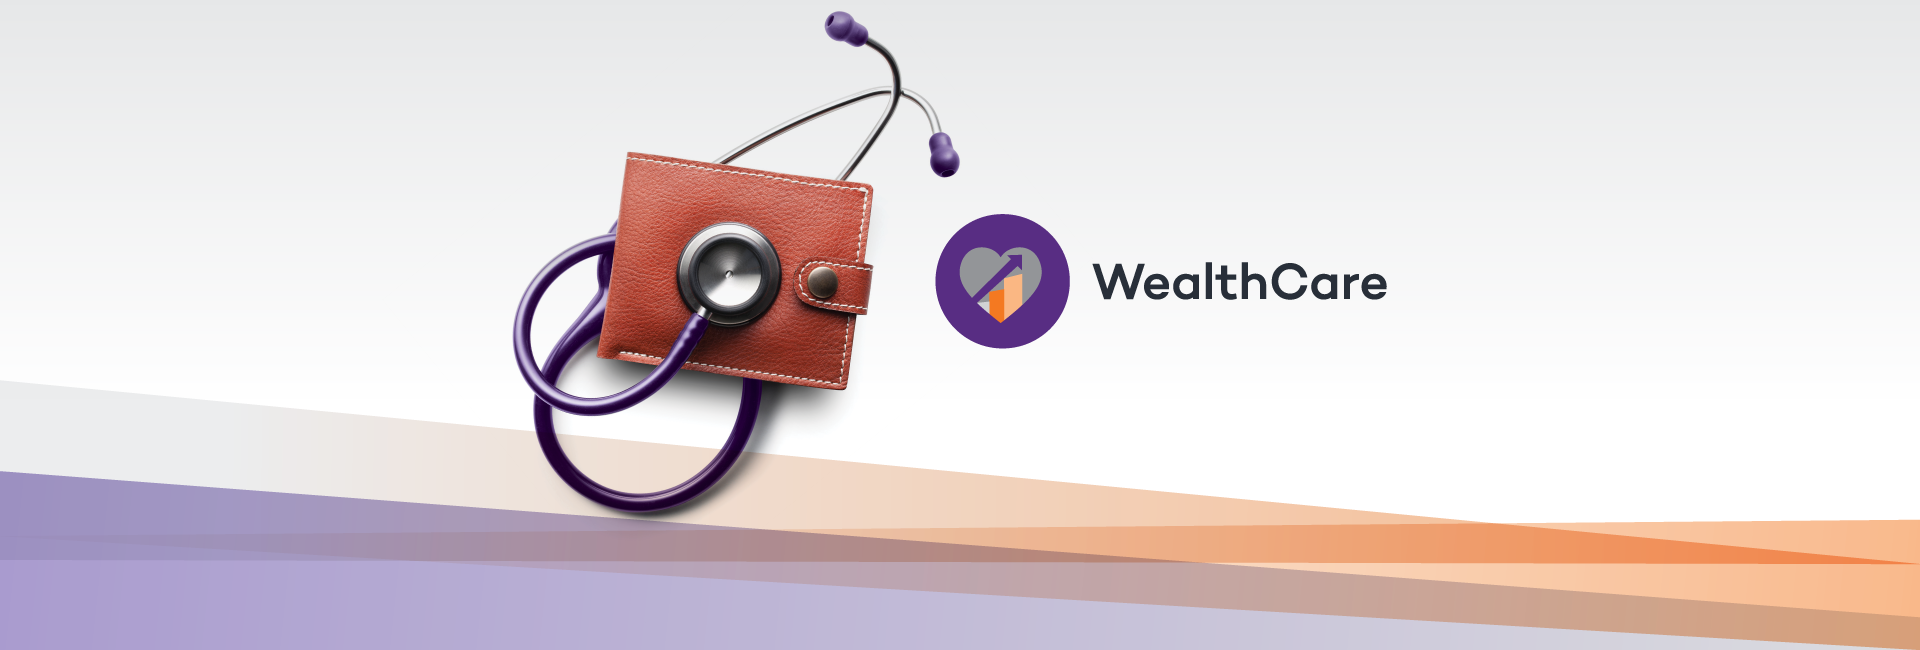 WealthCare-2020-Front-Page-Banner-1920x650